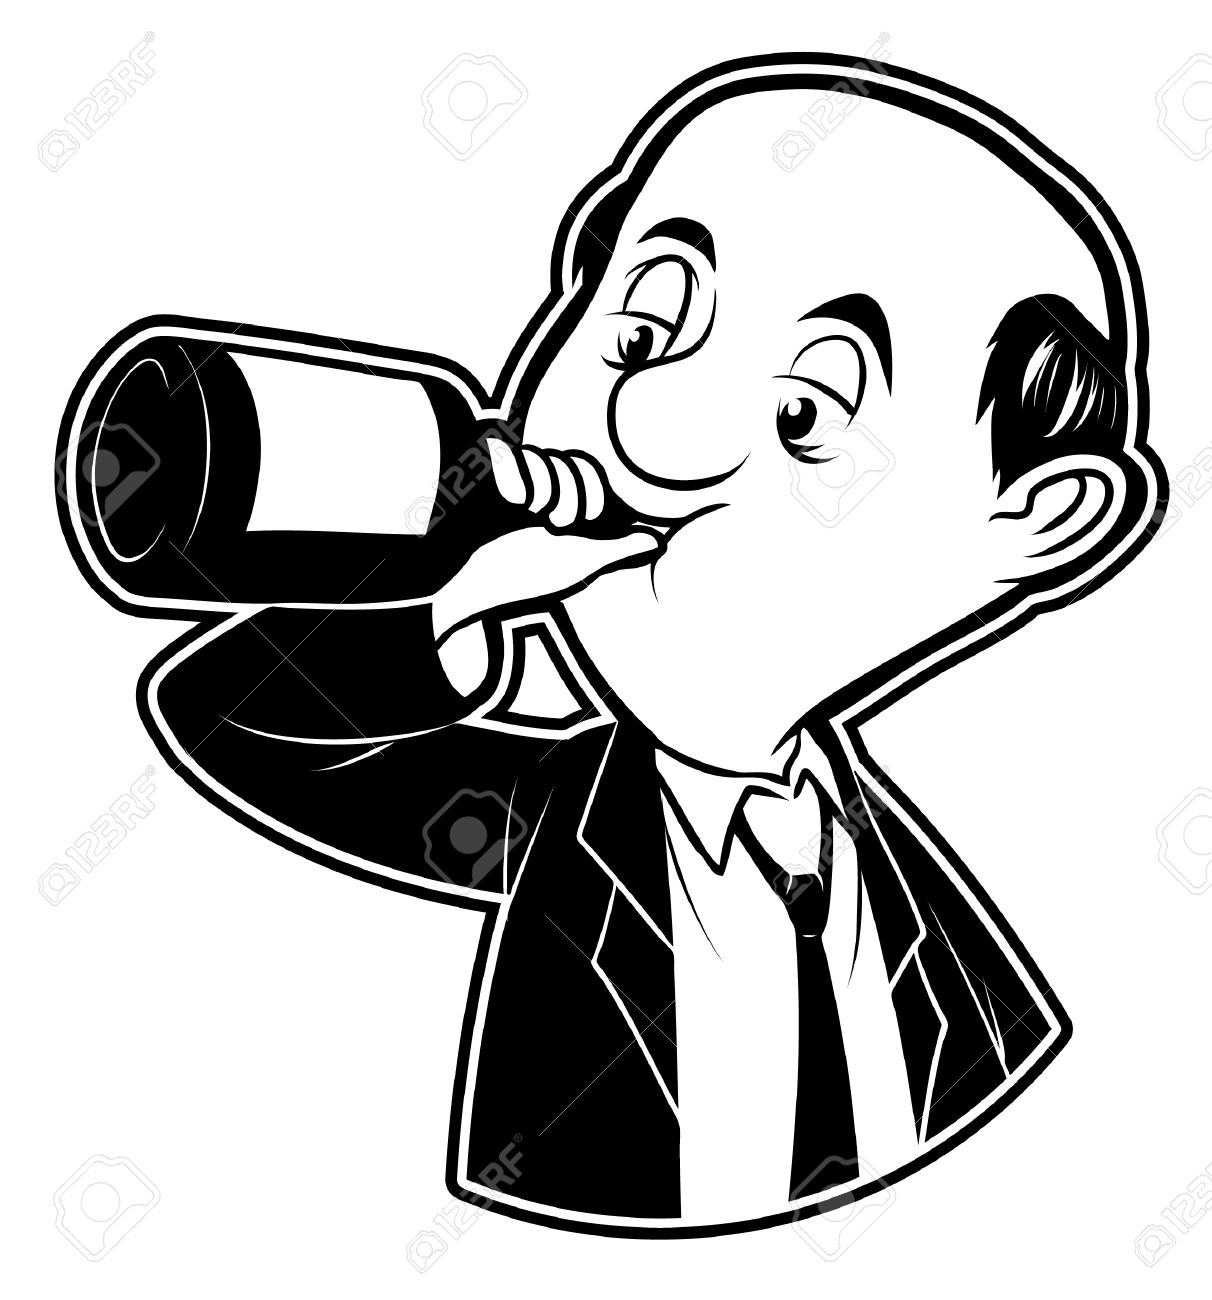 hight resolution of black and white clipart drunk man stock vector 19499018